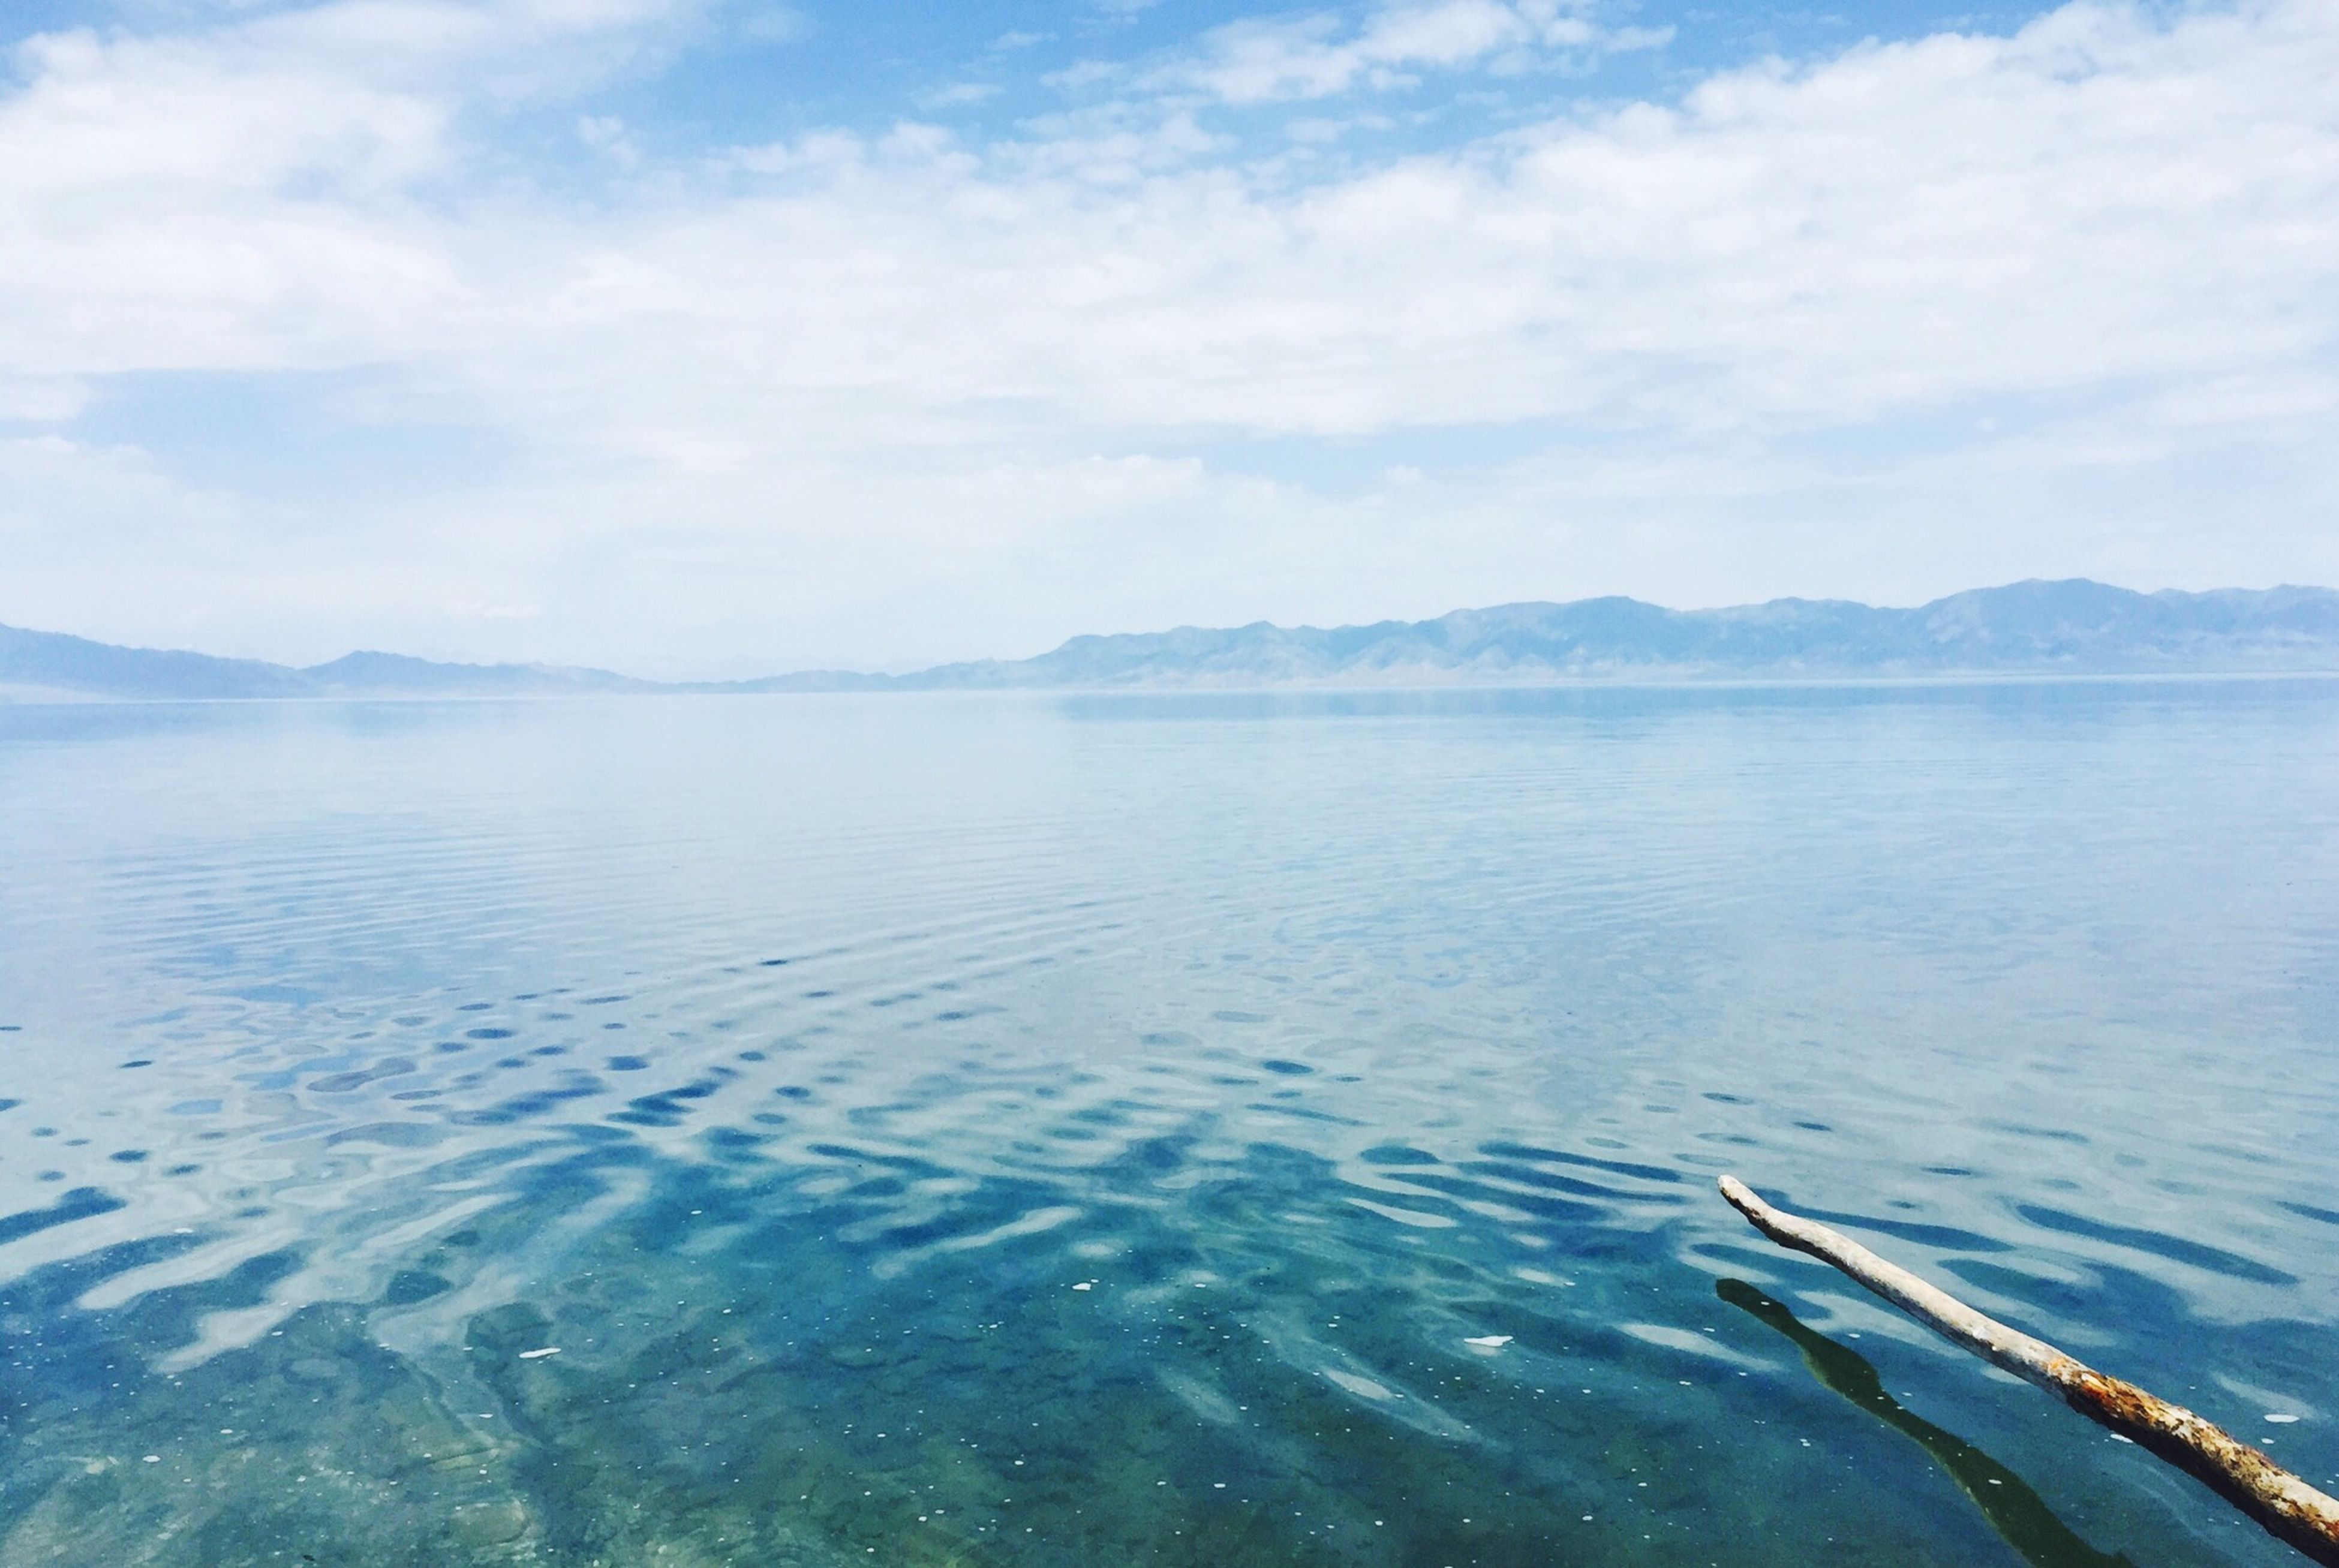 water, tranquil scene, mountain, sky, scenics, tranquility, beauty in nature, waterfront, sea, nature, lake, cloud - sky, rippled, mountain range, idyllic, cloud, day, cloudy, outdoors, non-urban scene